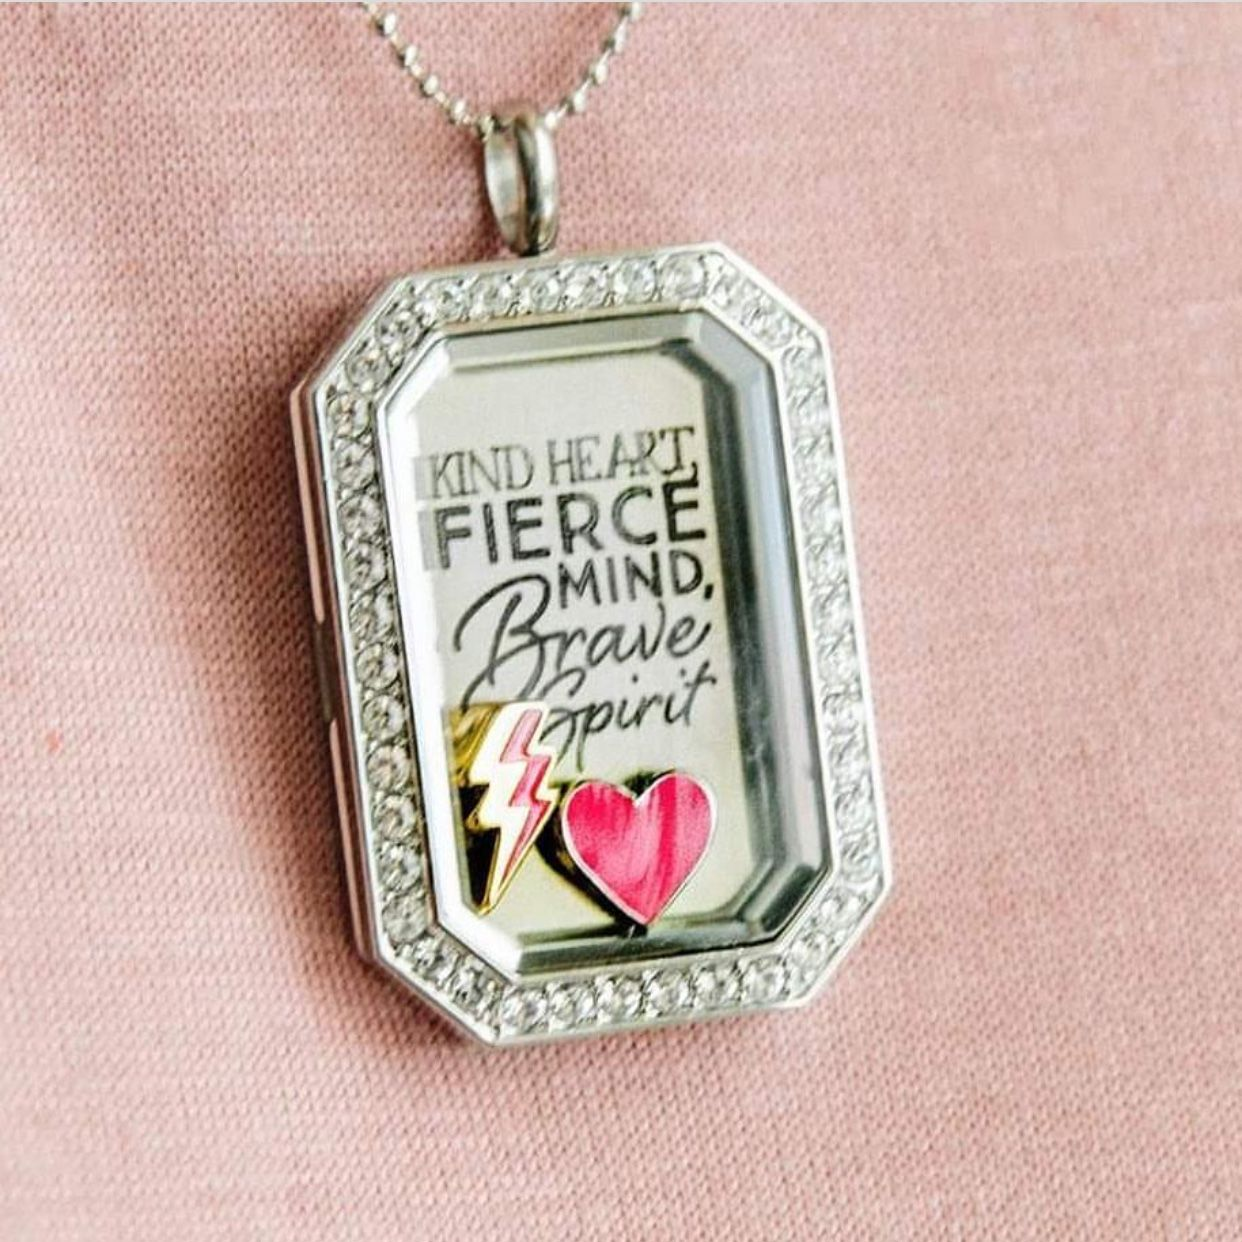 Origami owl stand against bullying with our beautiful silver origami owl stand against bullying with our beautiful silver kind heart fierce mind brave spirit heritage locket set featuring an exclusive inscribed jeuxipadfo Images